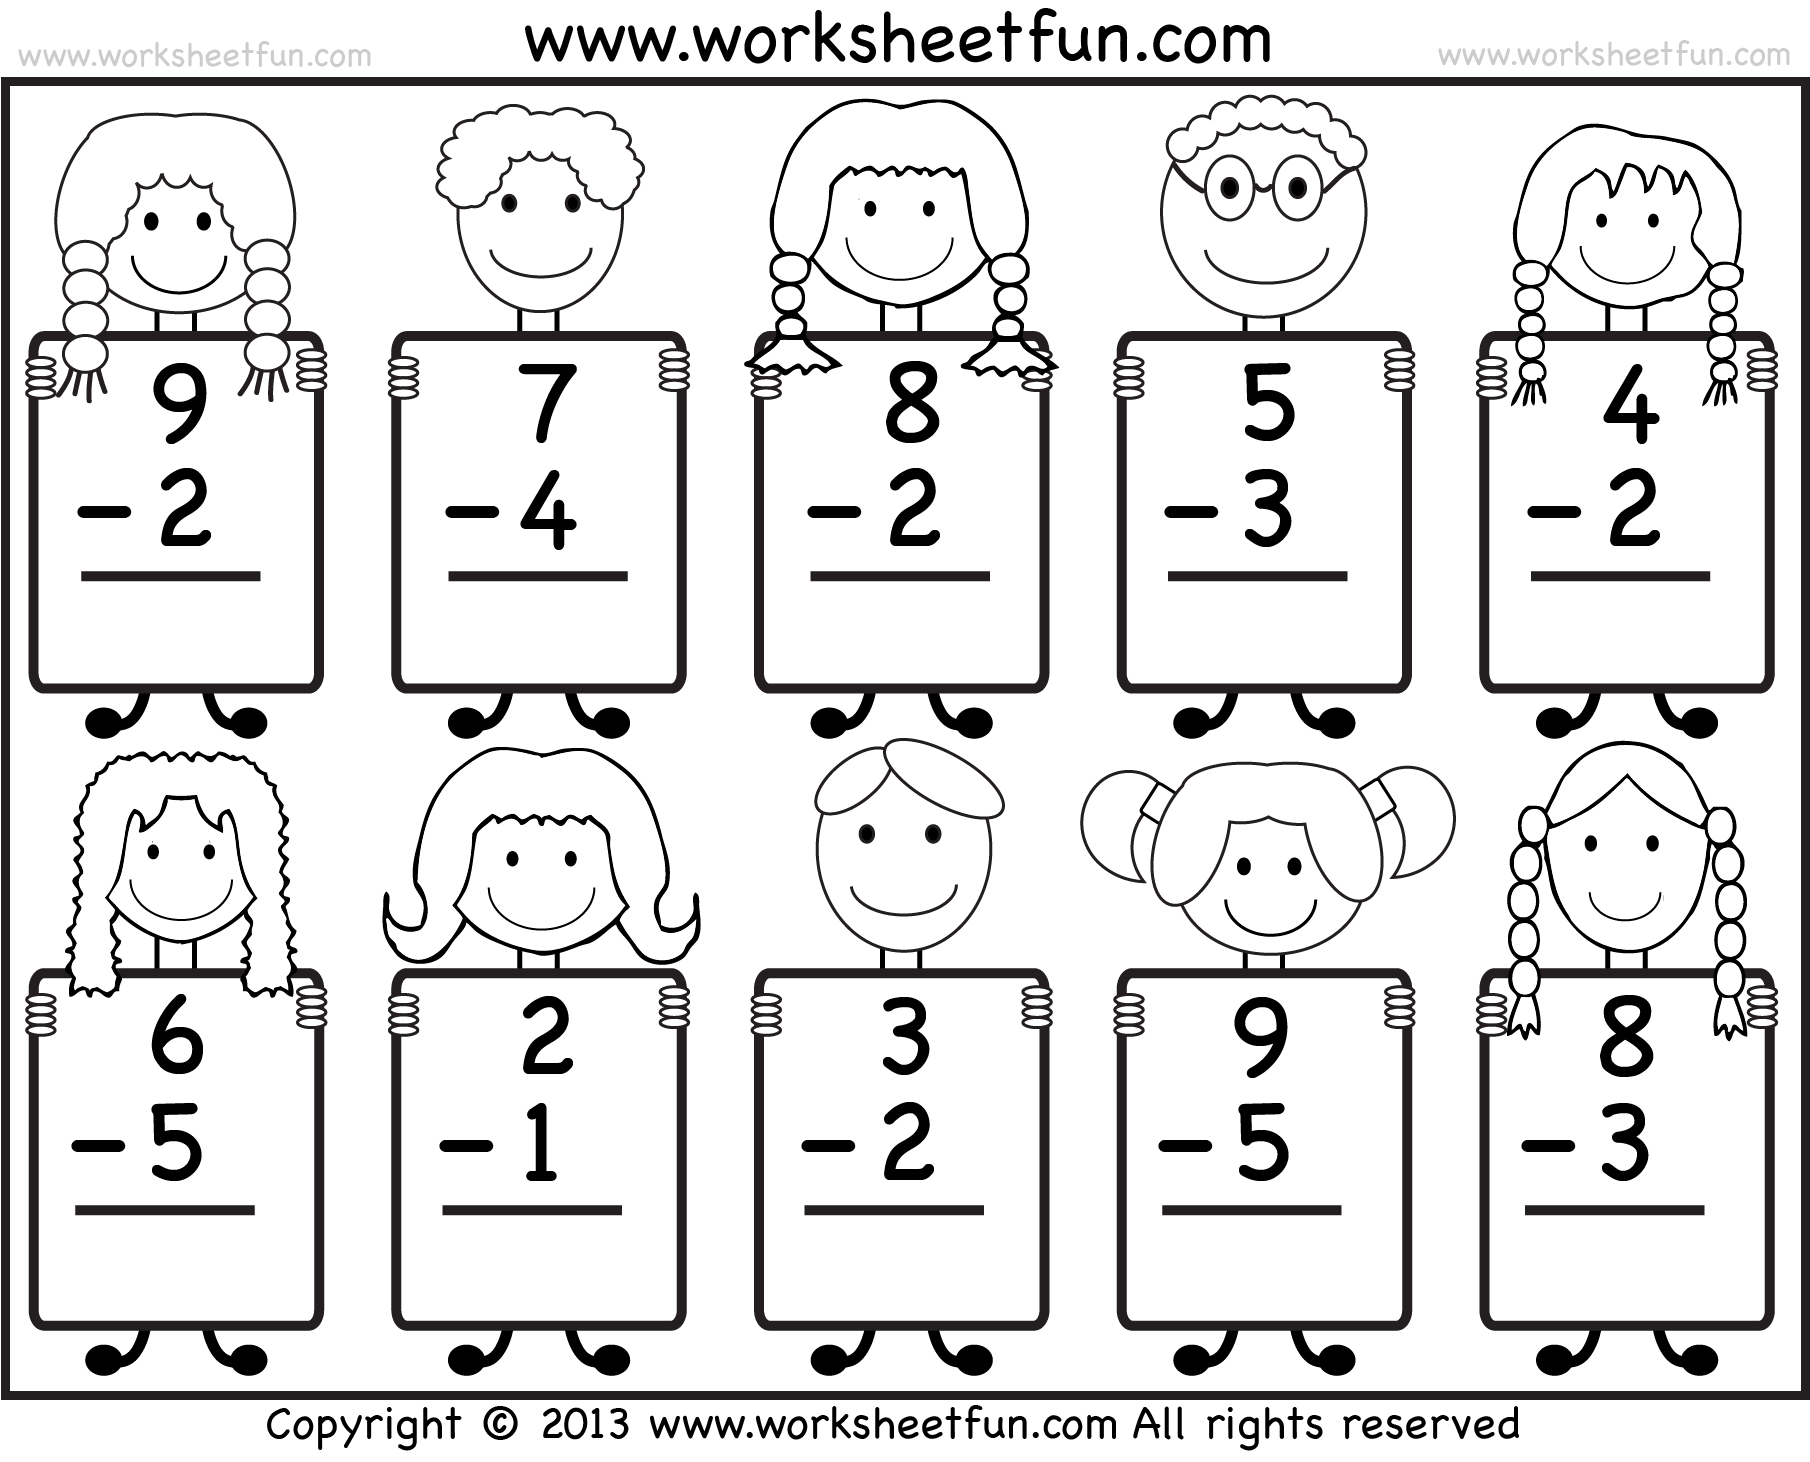 worksheet Kindergarten Printable Worksheets beginner subtraction 10 kindergarten worksheets worksheet